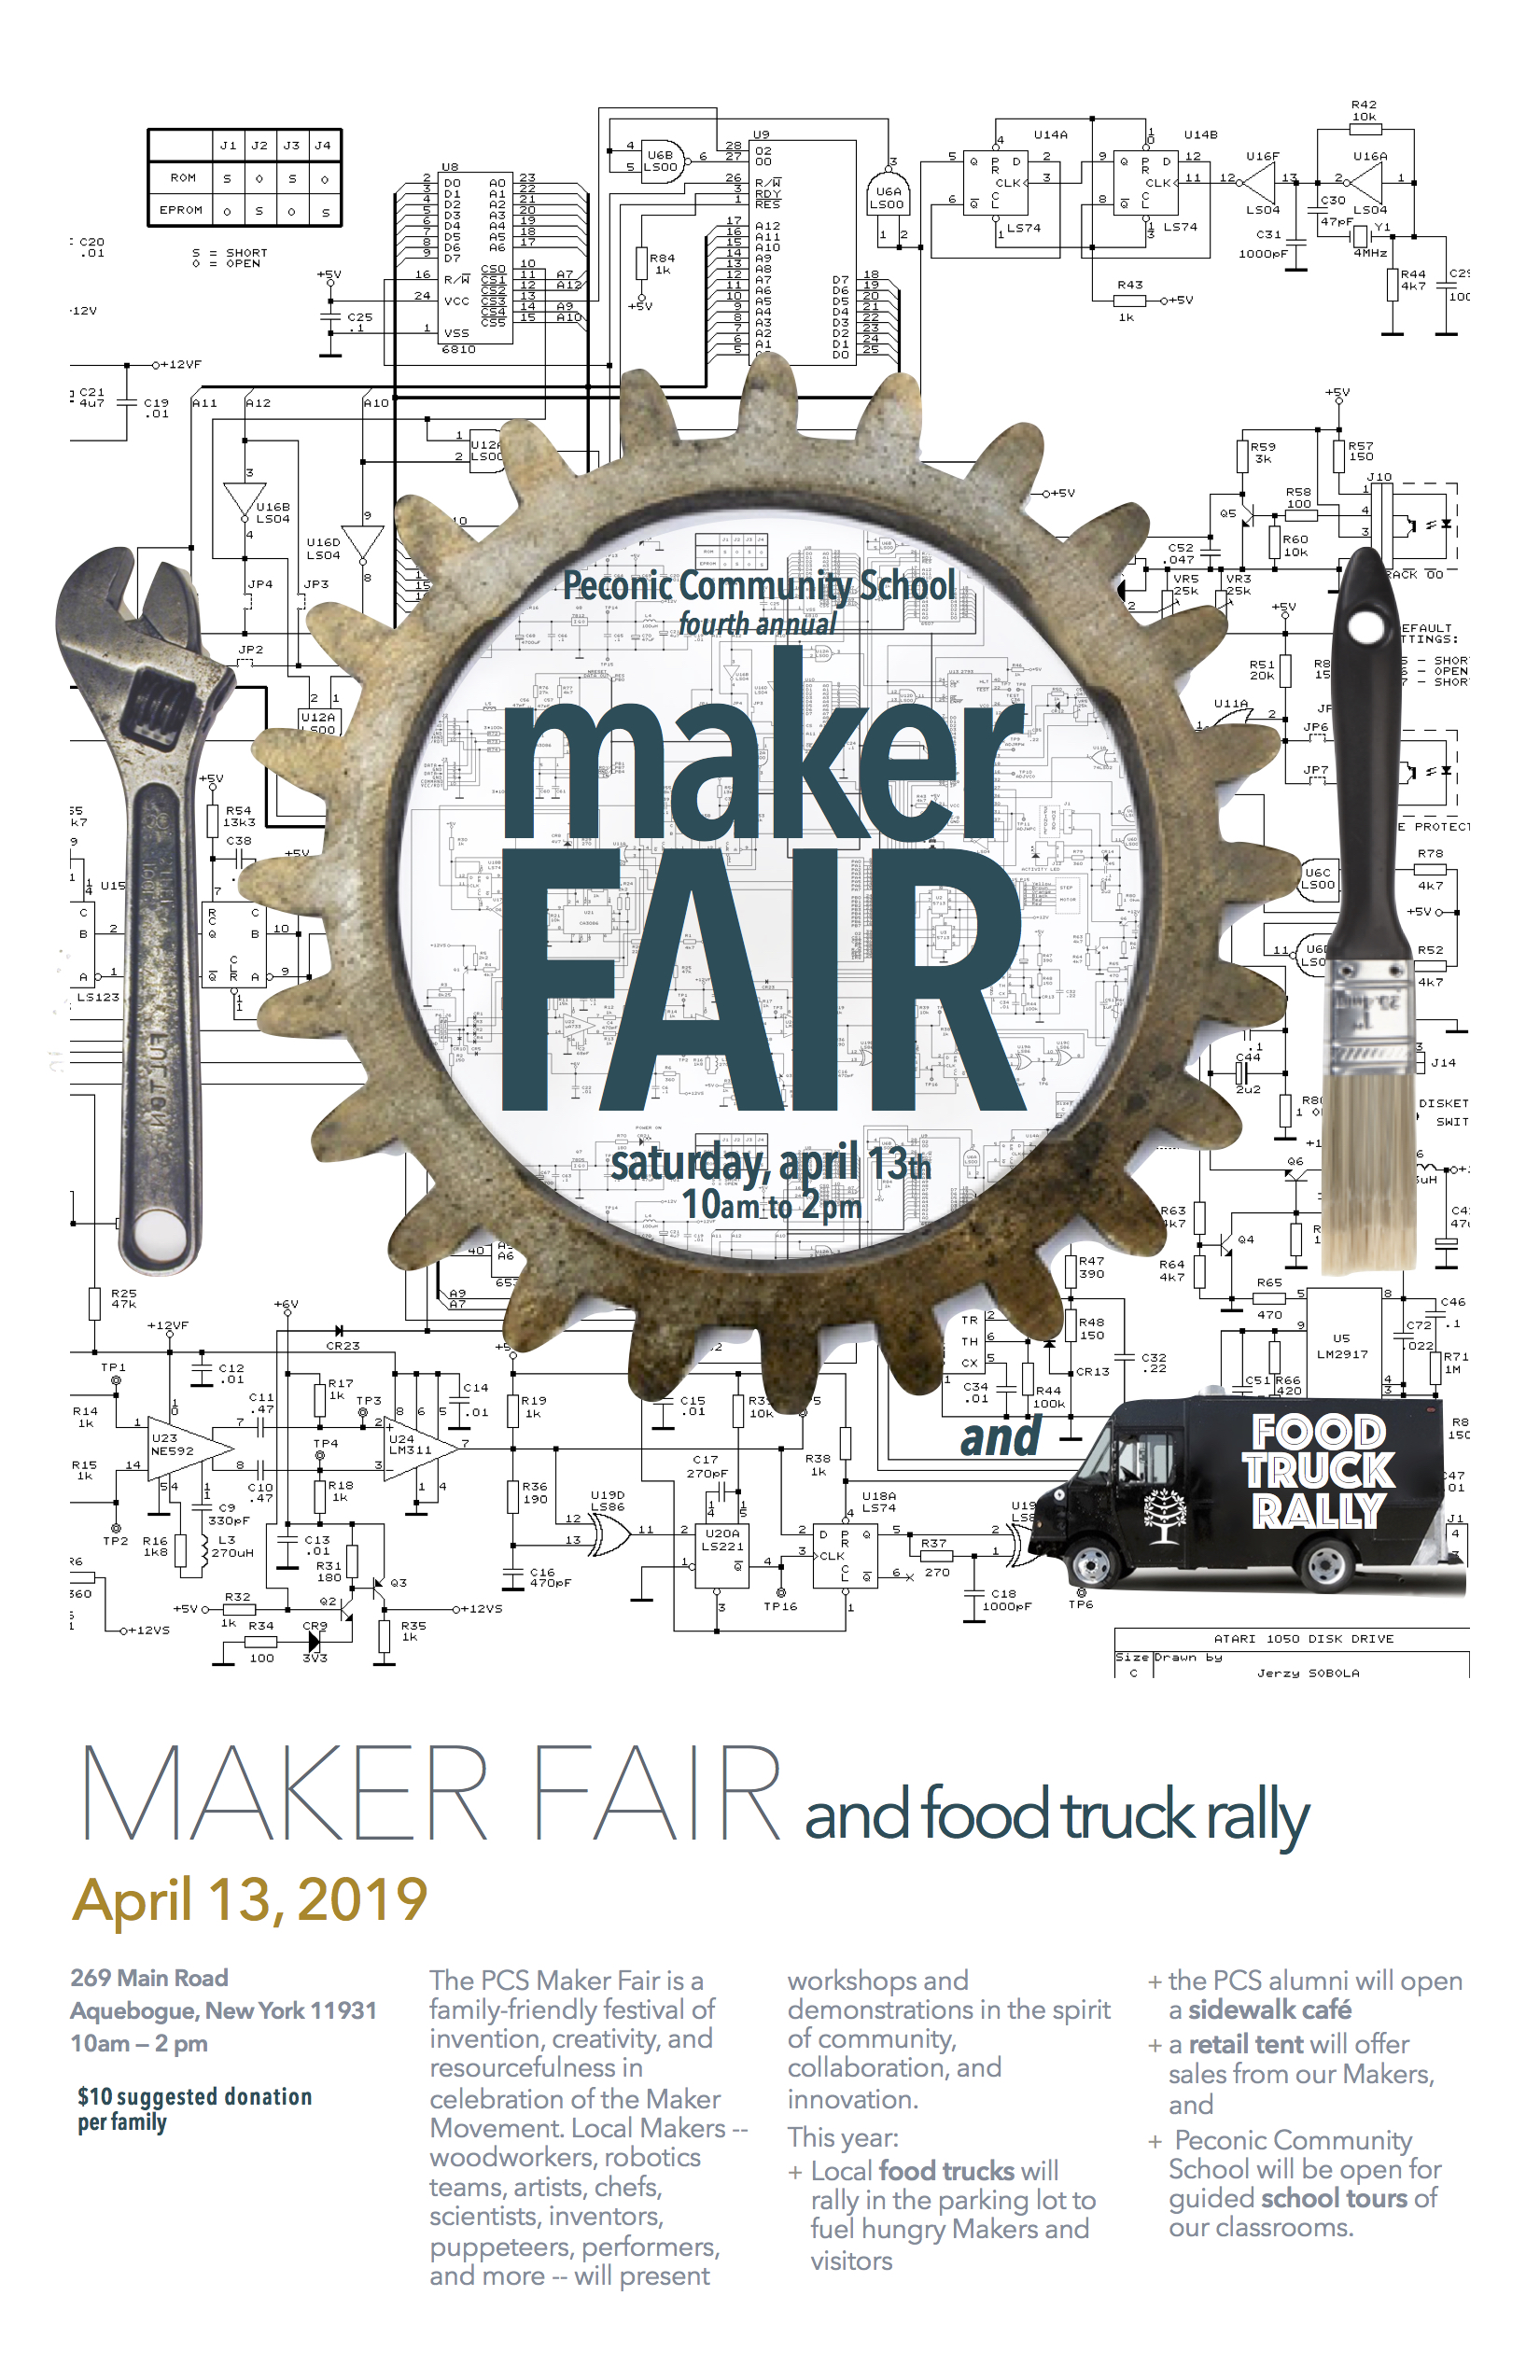 maker fair 2019 full poster JPEG.jpg